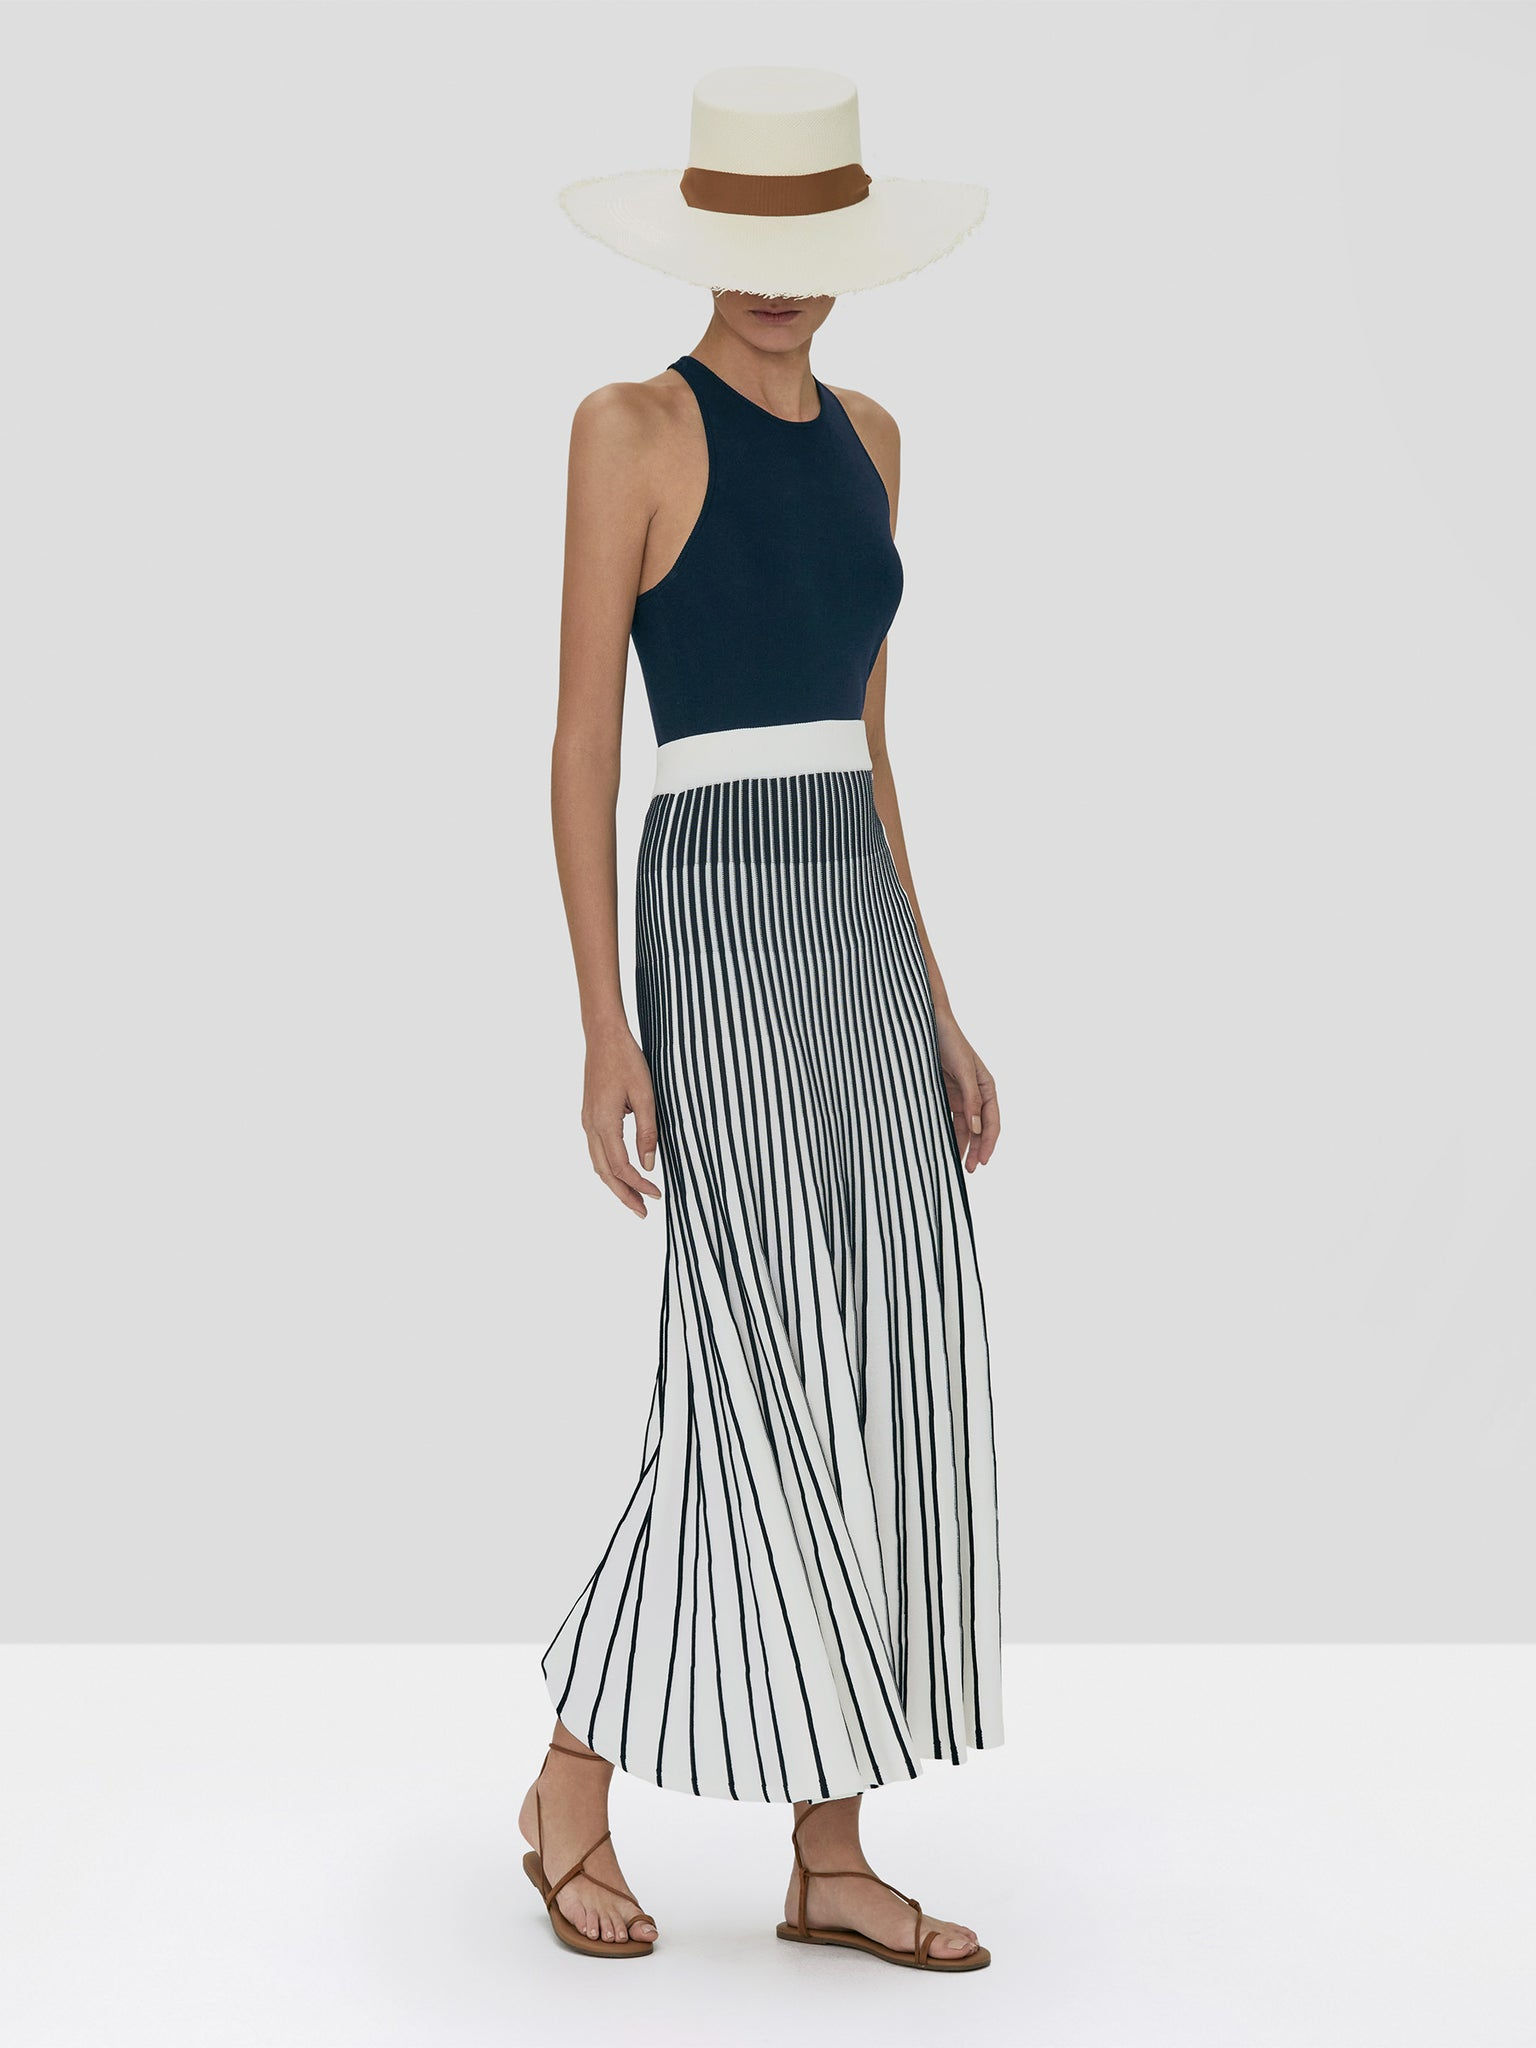 Alexis Zeni Top in Navy and Vani Skirt in Navy White Stripe from Spring Summer 2020